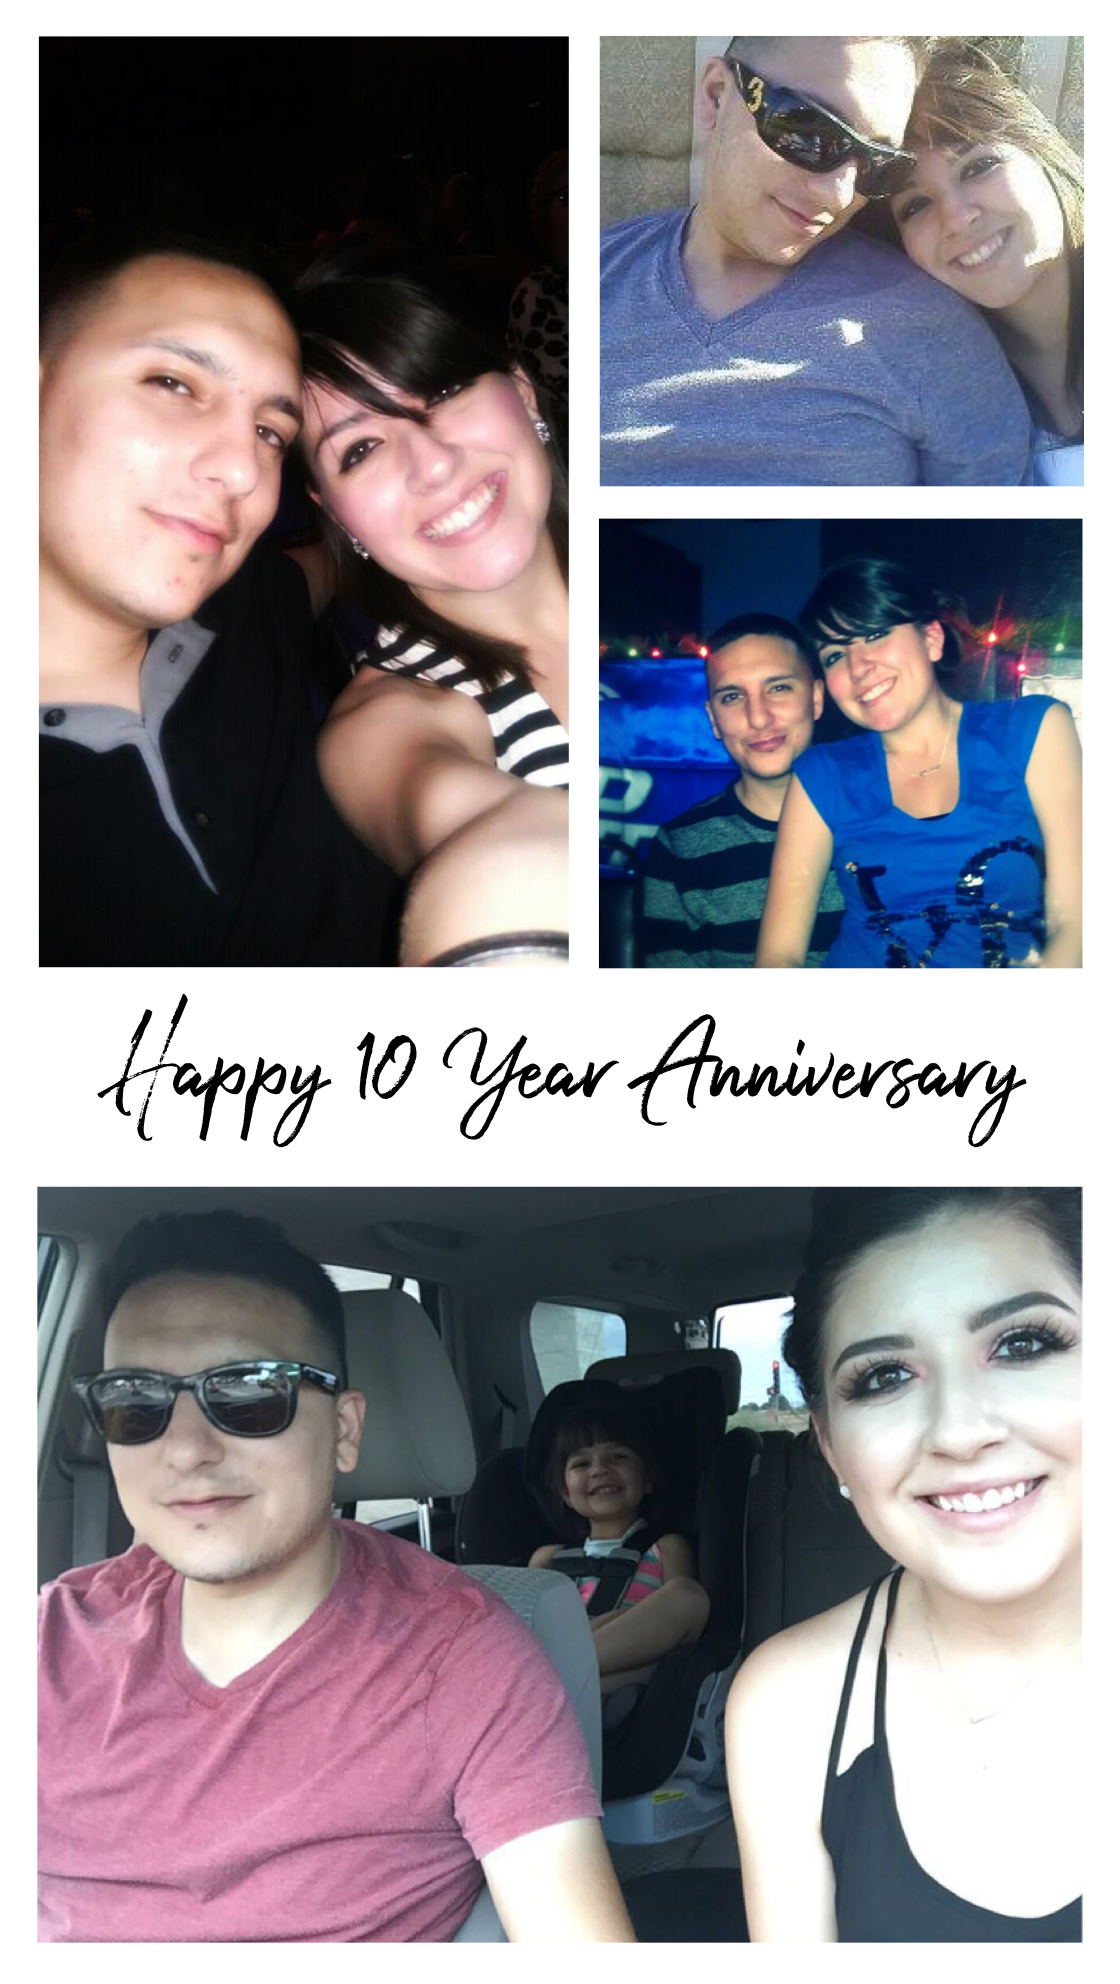 Our 10 Year Anniversary